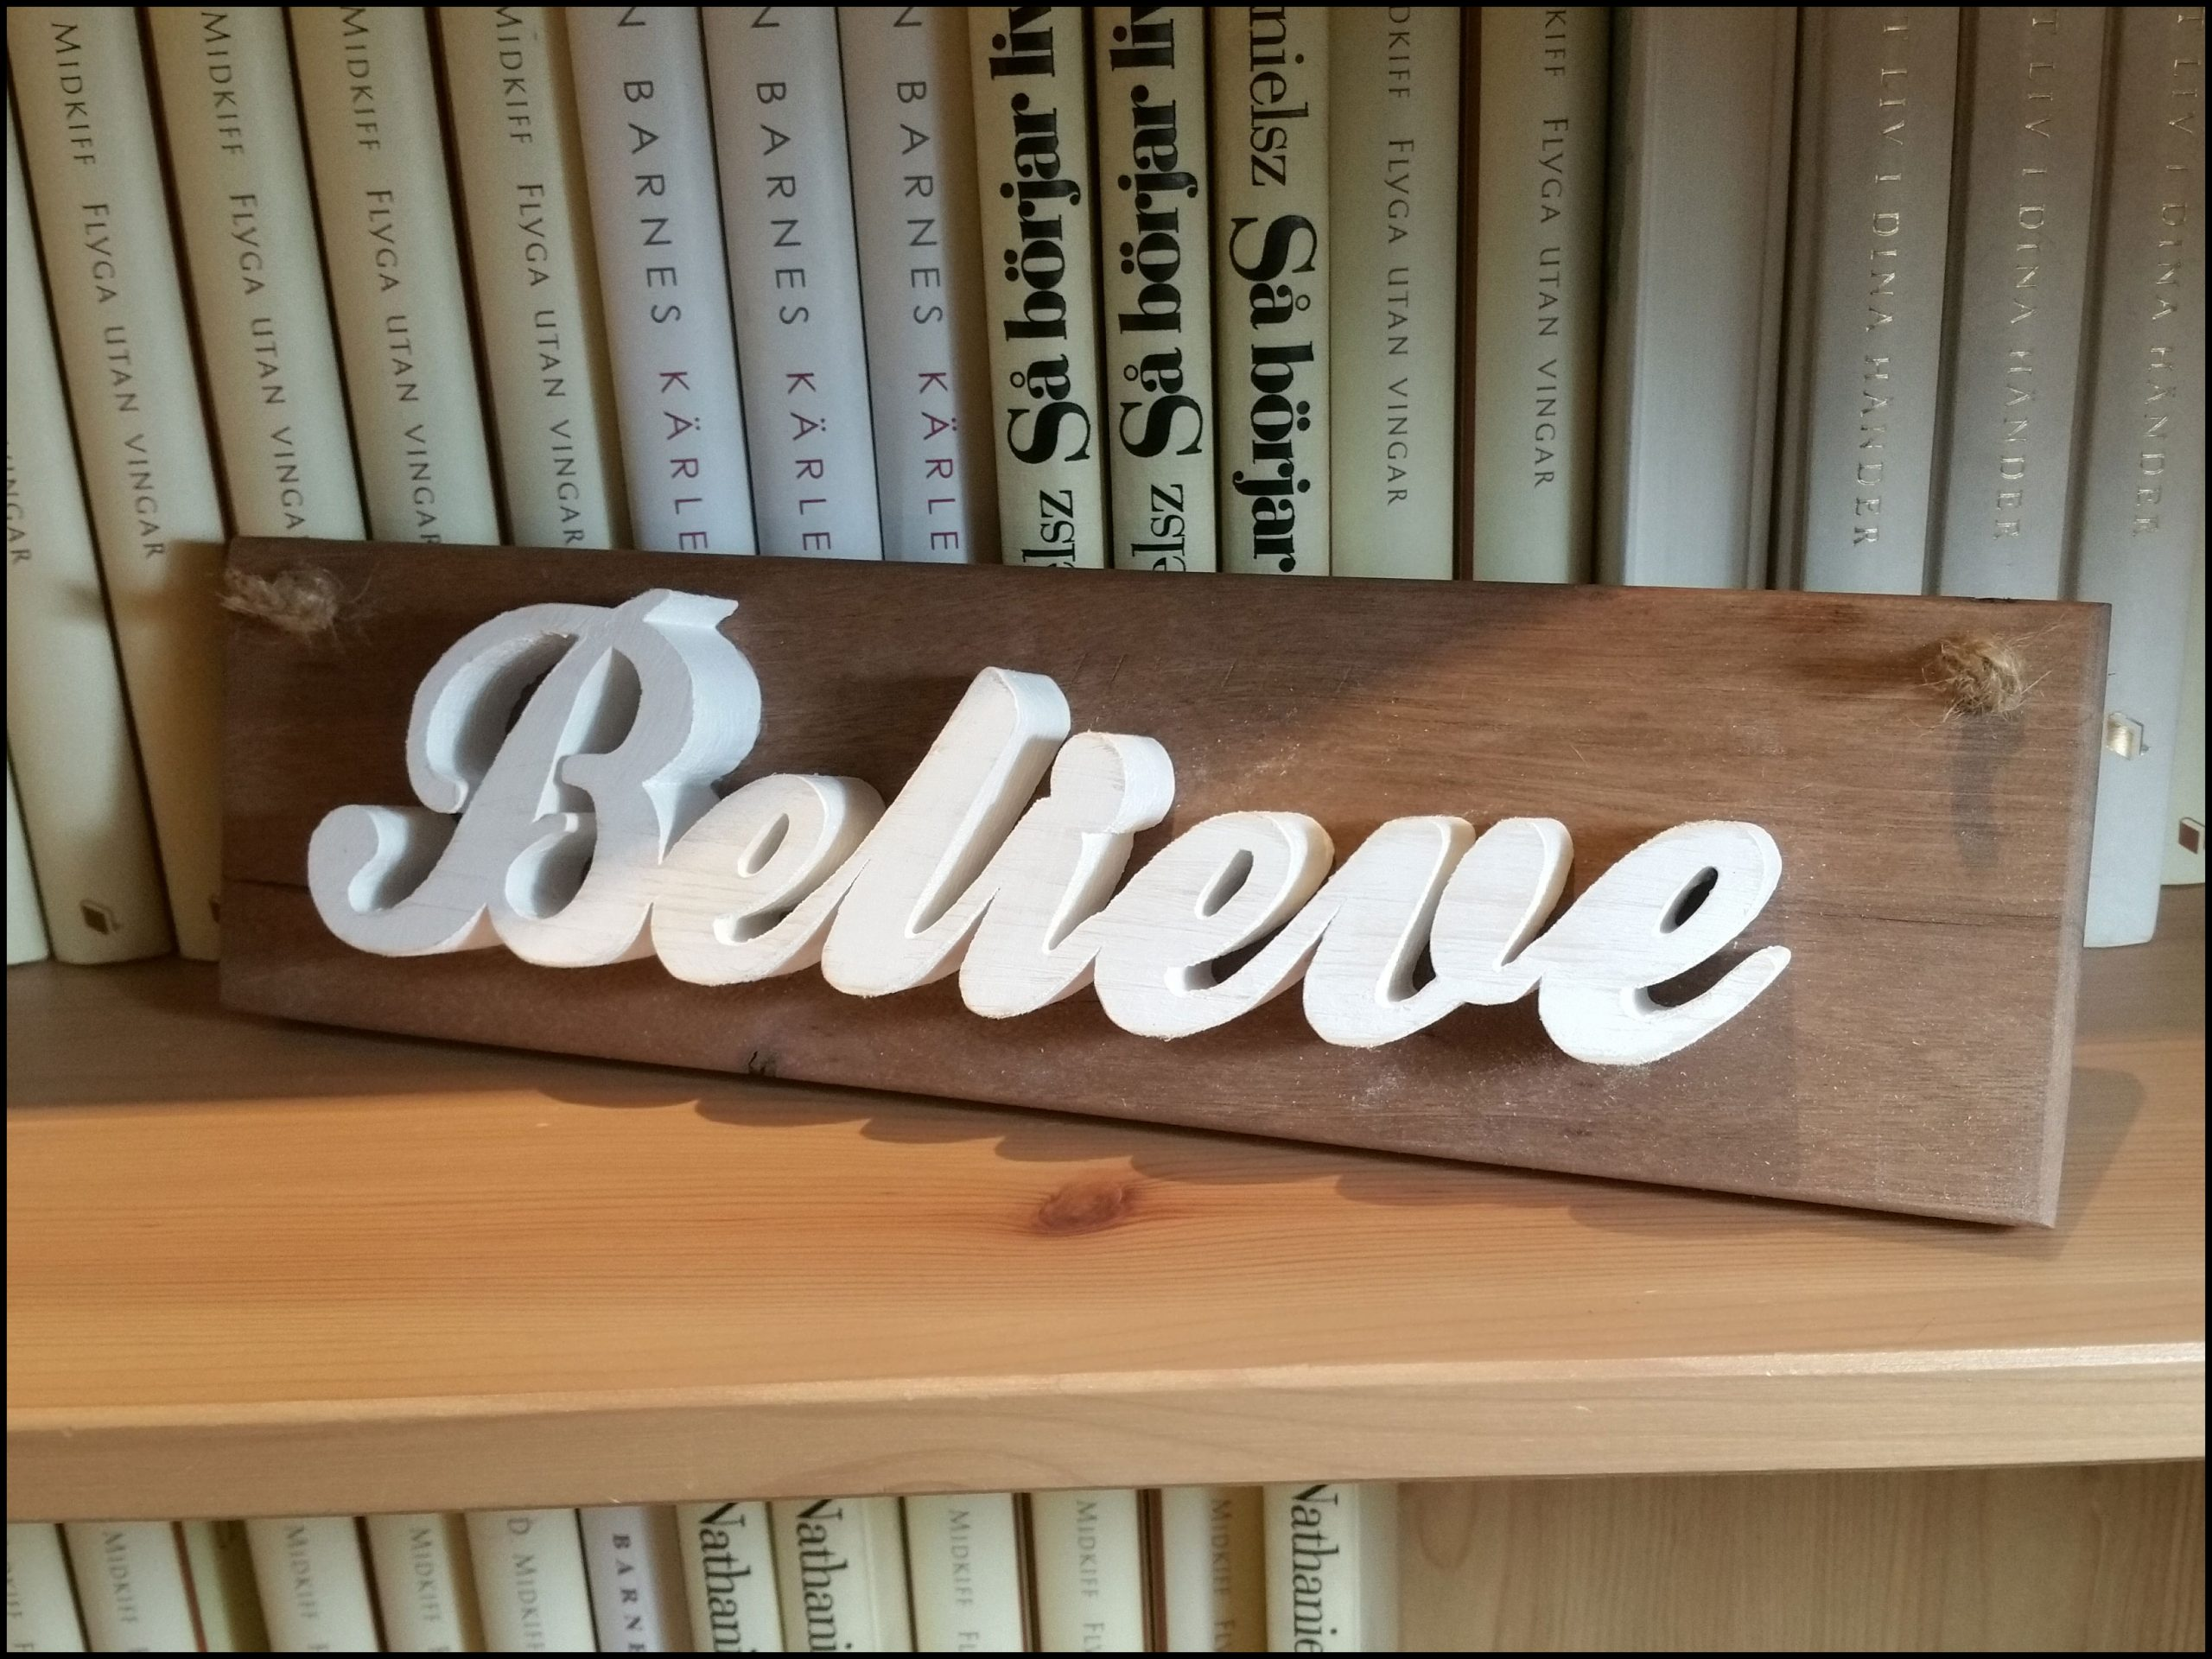 Believe wall hanging sign Image